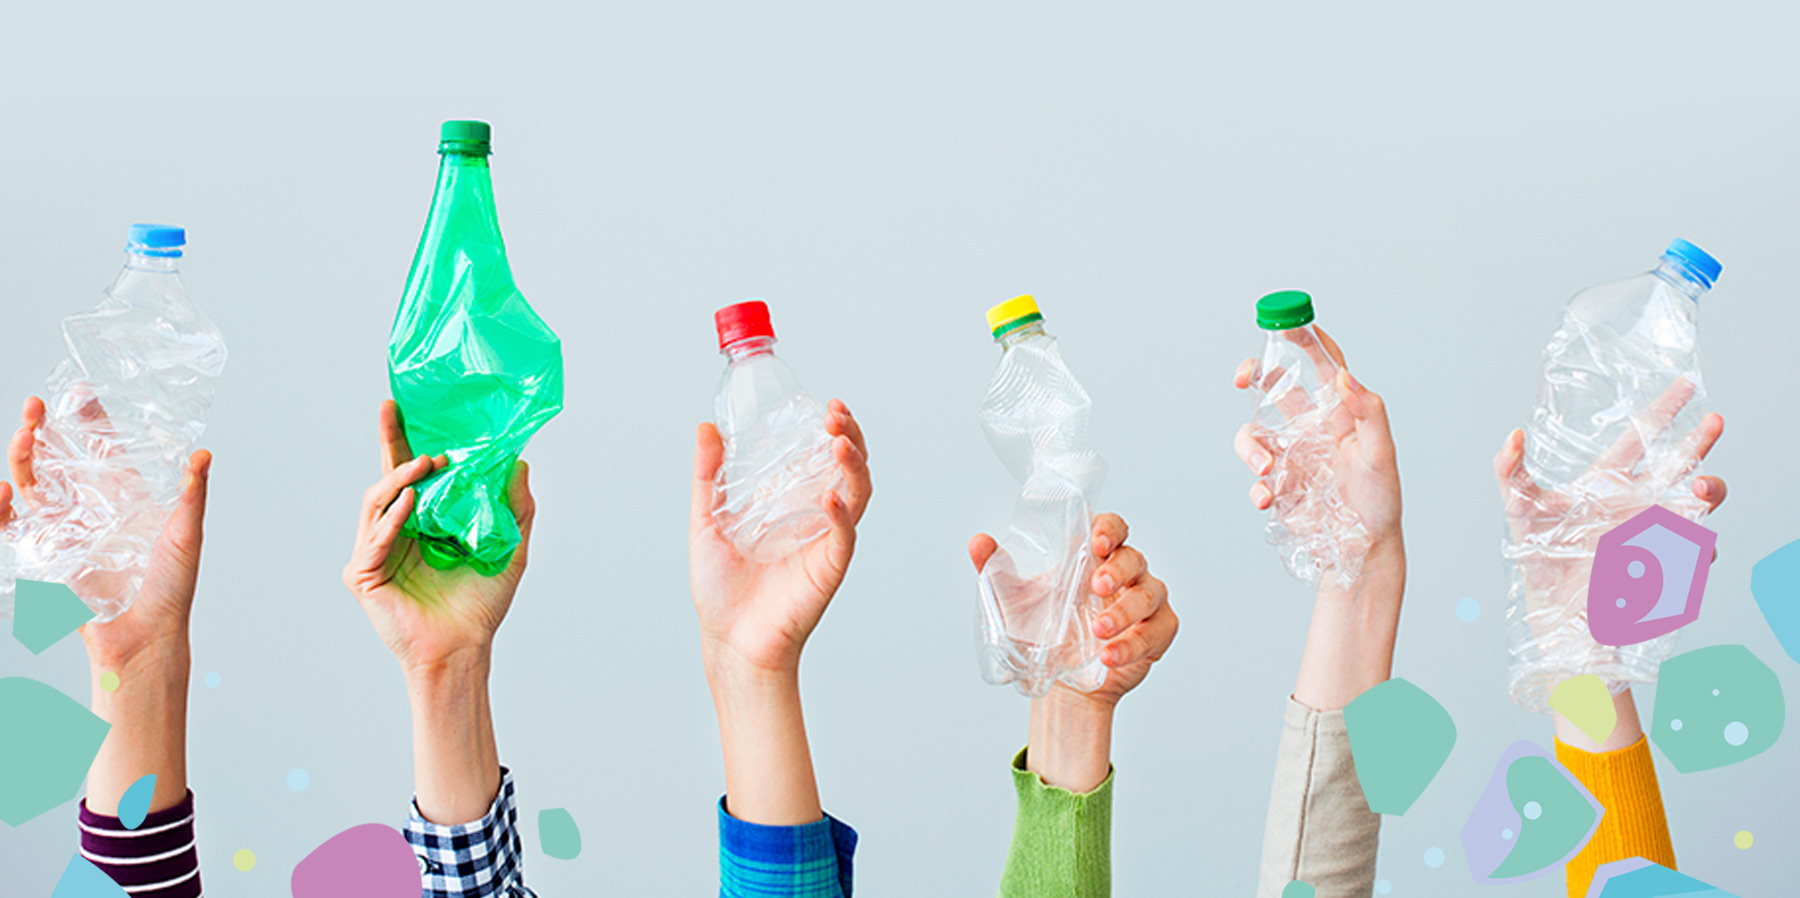 Six hands holding up empty plastic bottles, showing the importance of going plastic-free with Bonnie Bio UK